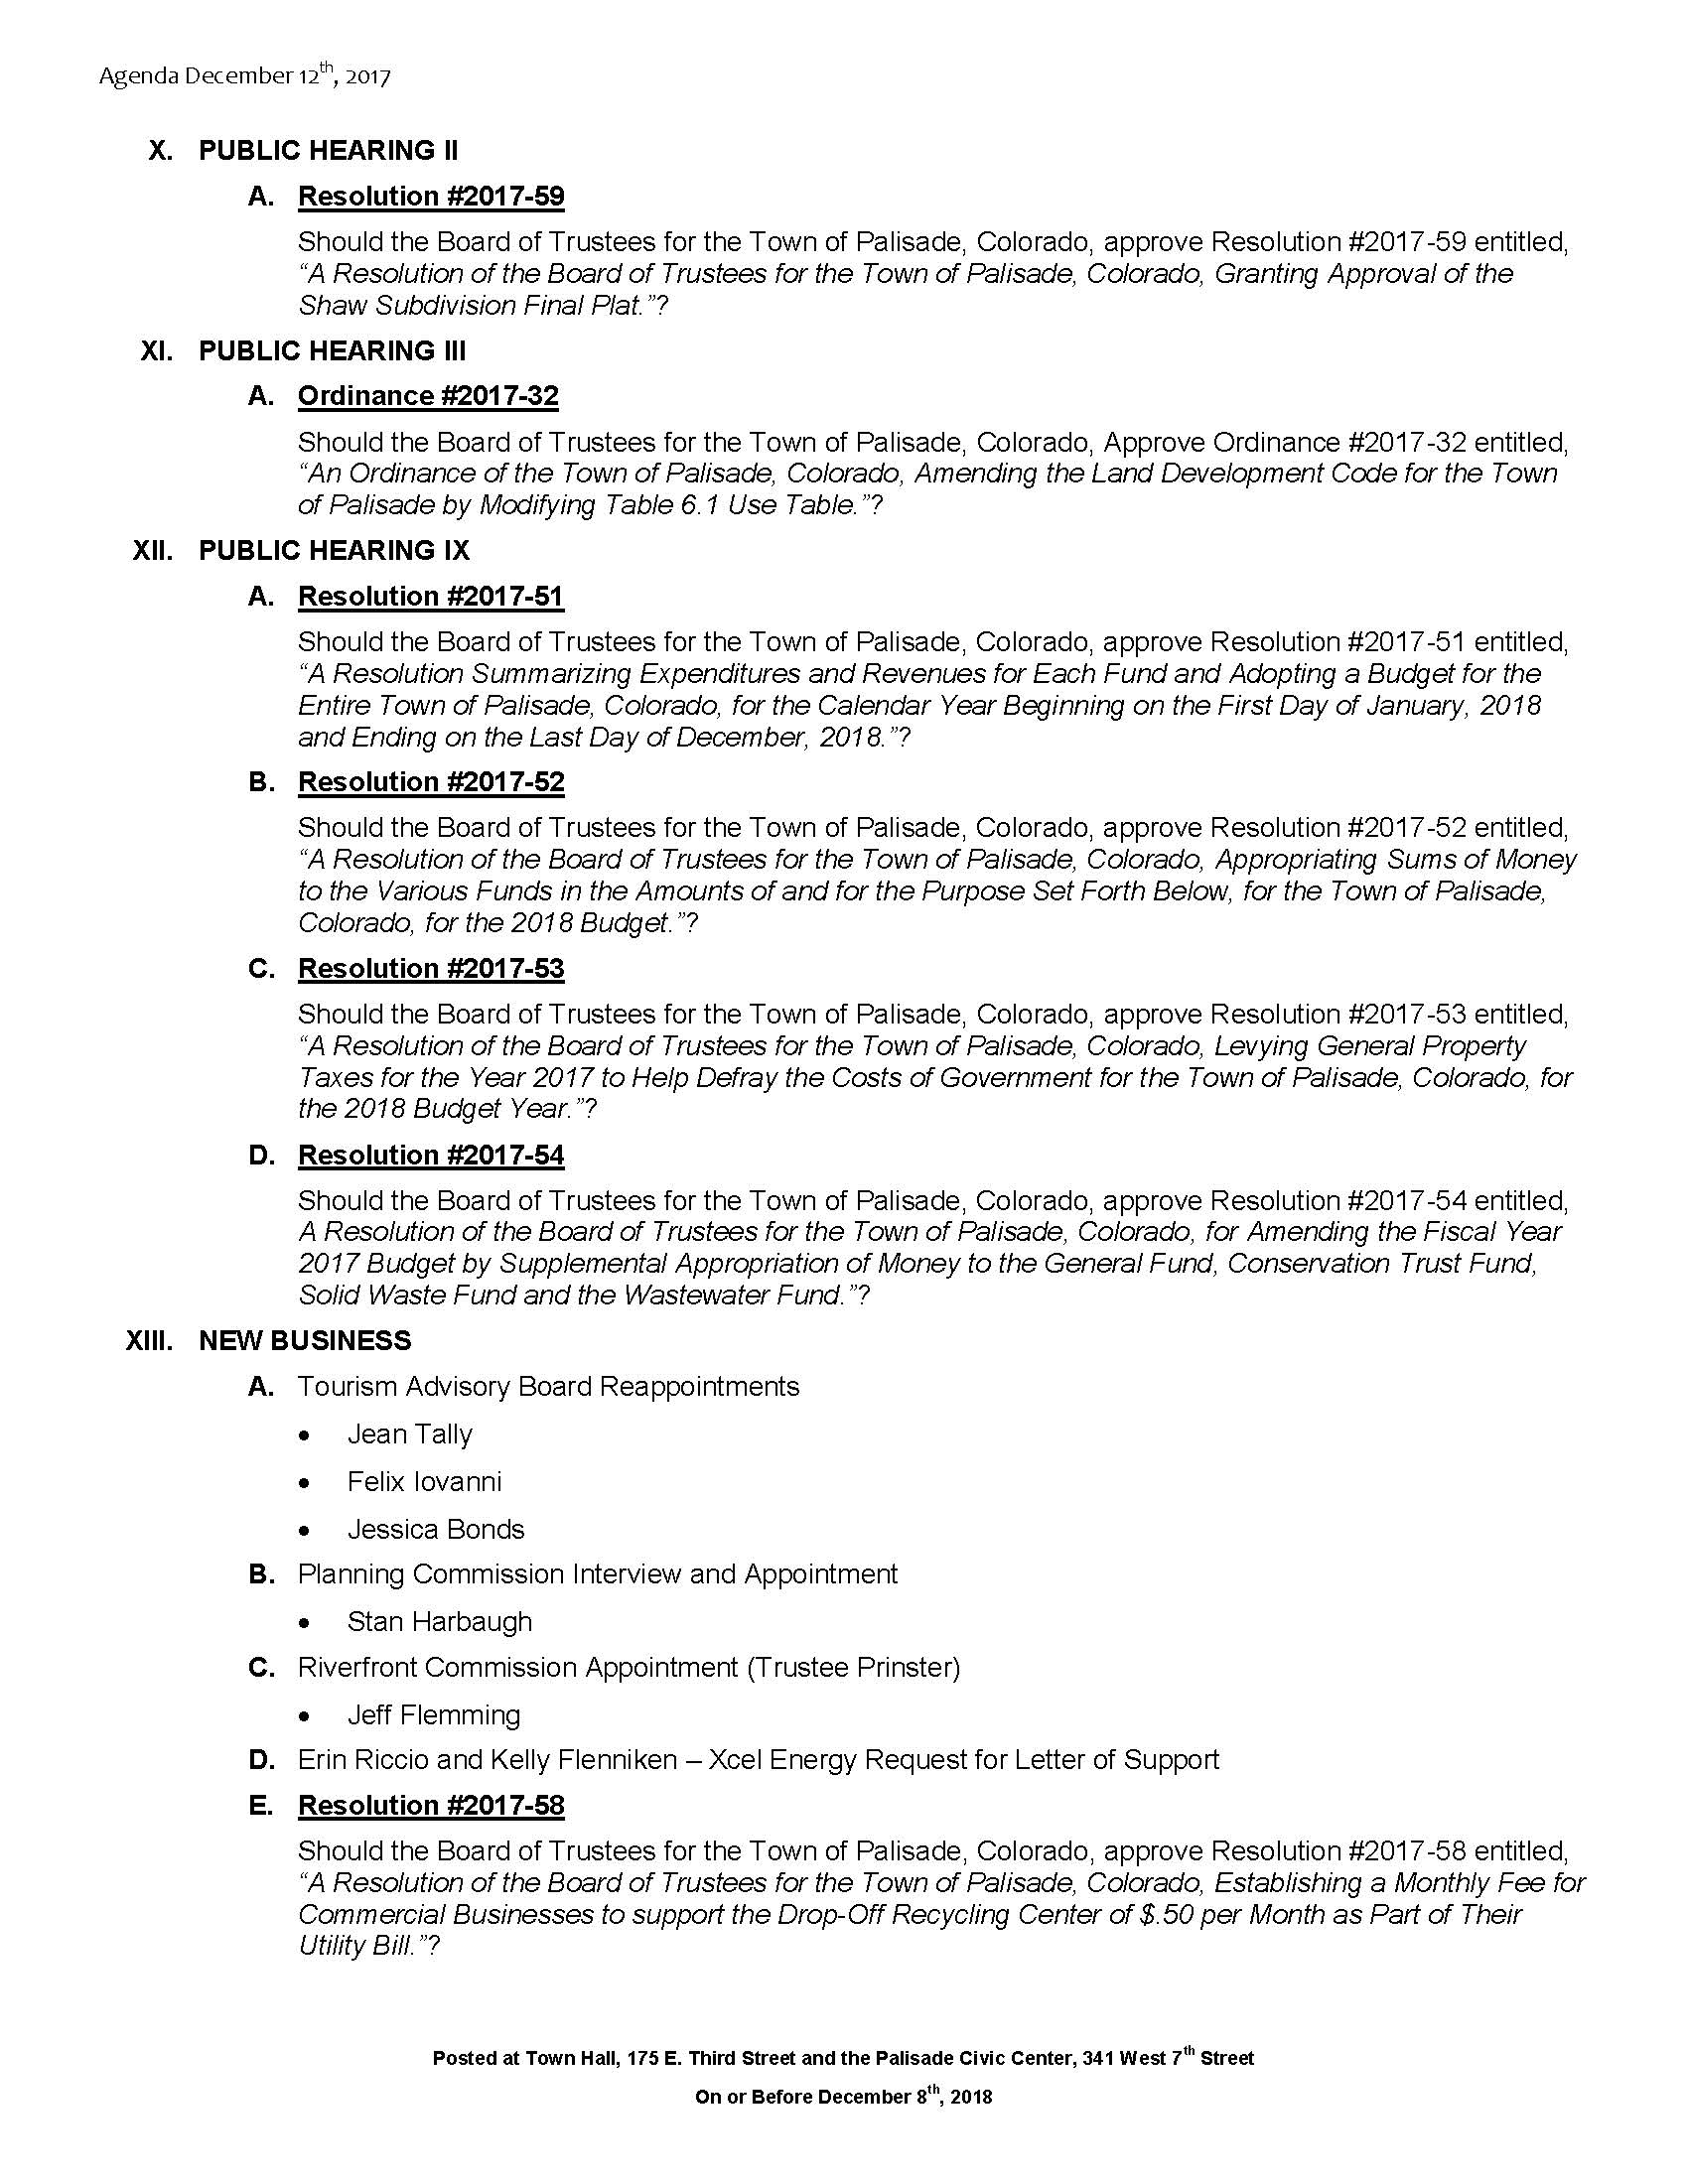 December 12th 2017 Board Meeting Agenda Page 2